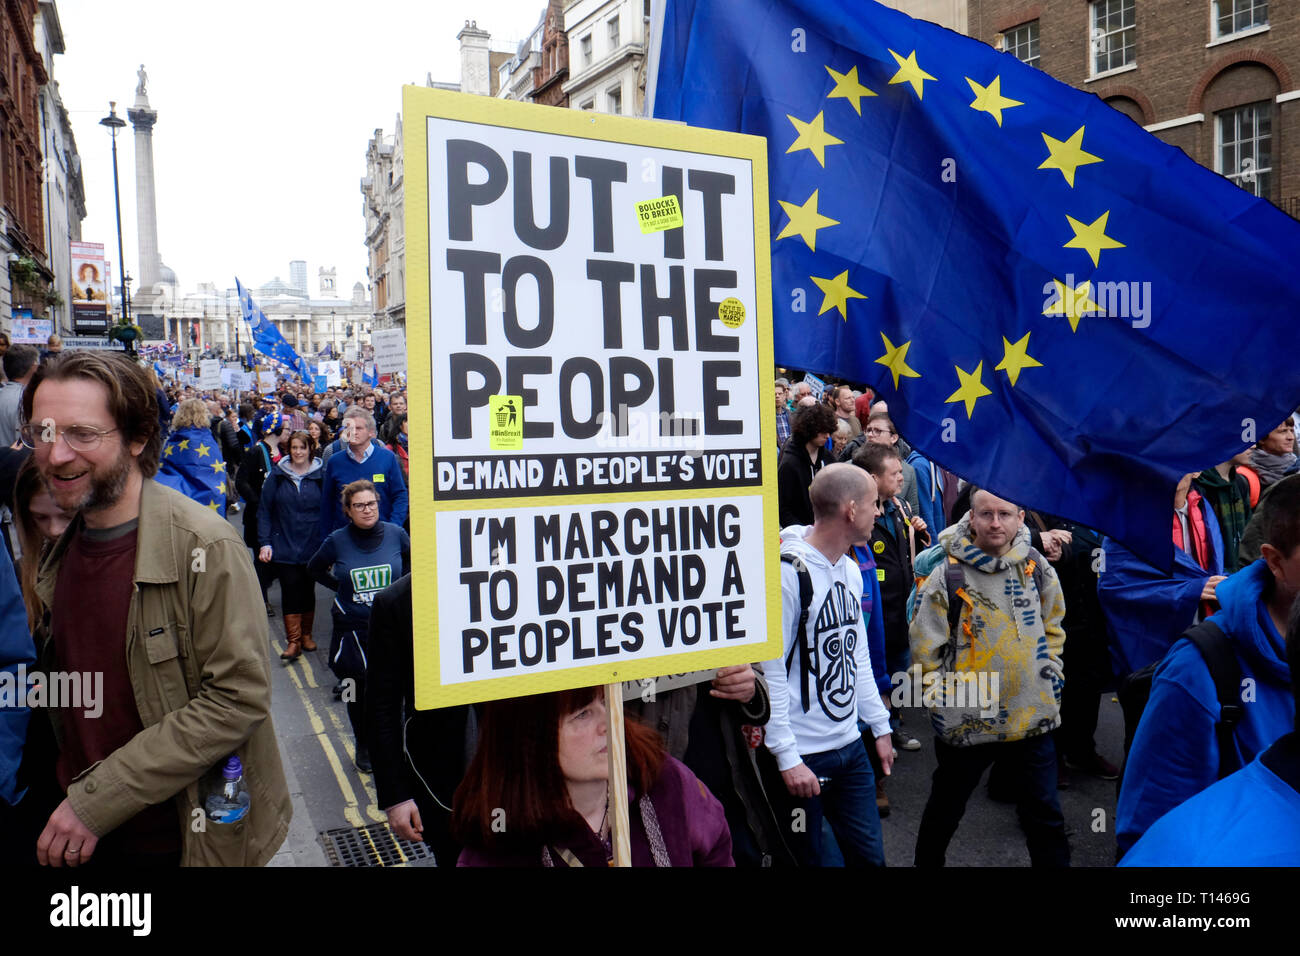 London, UK, 23rd March 2019. Over a million people march in central, demanding another Brexit vote. Credit: Yanice Idir / Alamy Live News Stock Photo